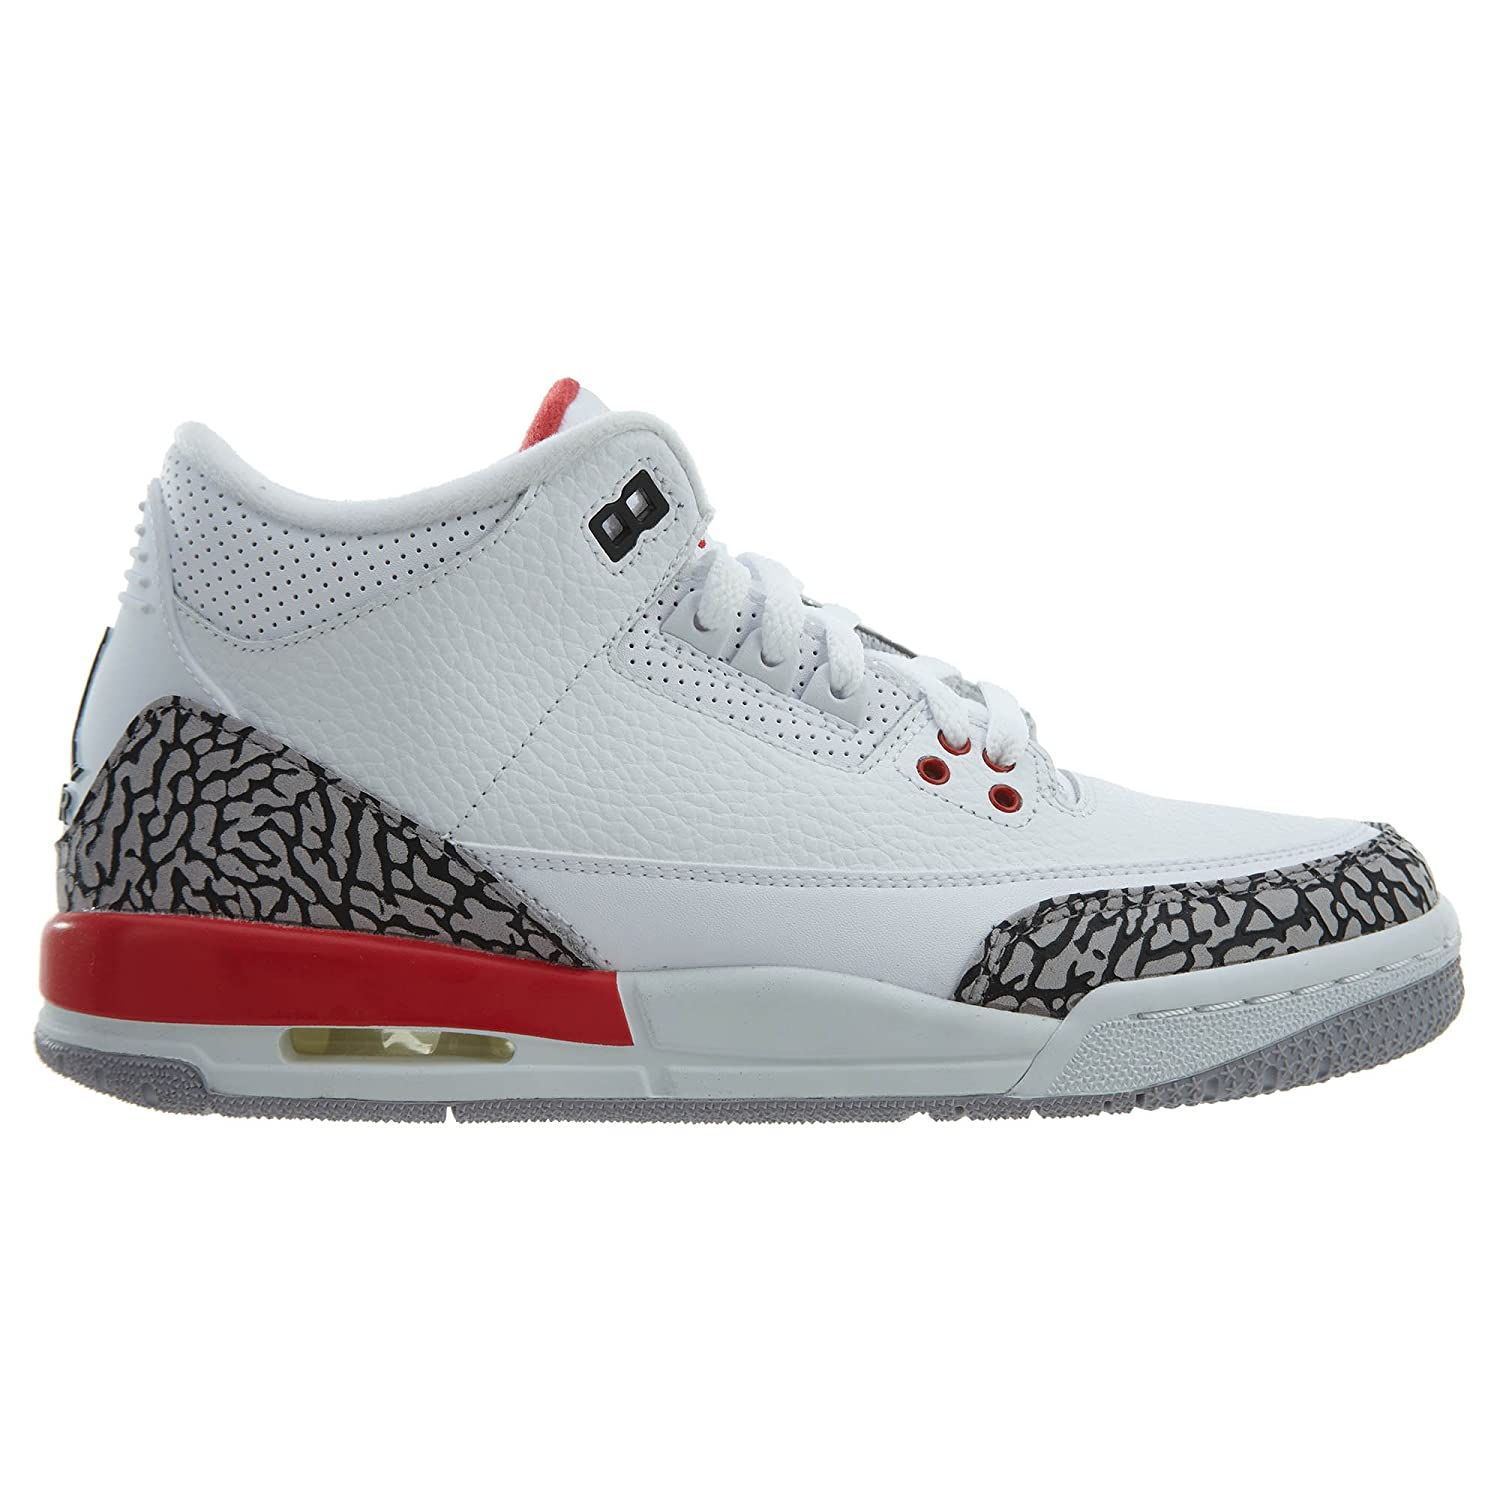 competitive price d41a8 1cb3b Amazon.com   Nike Air Jordan 3 Retro Big Boy s Shoes White Fire Red Cement  Grey 398614-116 (6.5 D(M) US)   Basketball